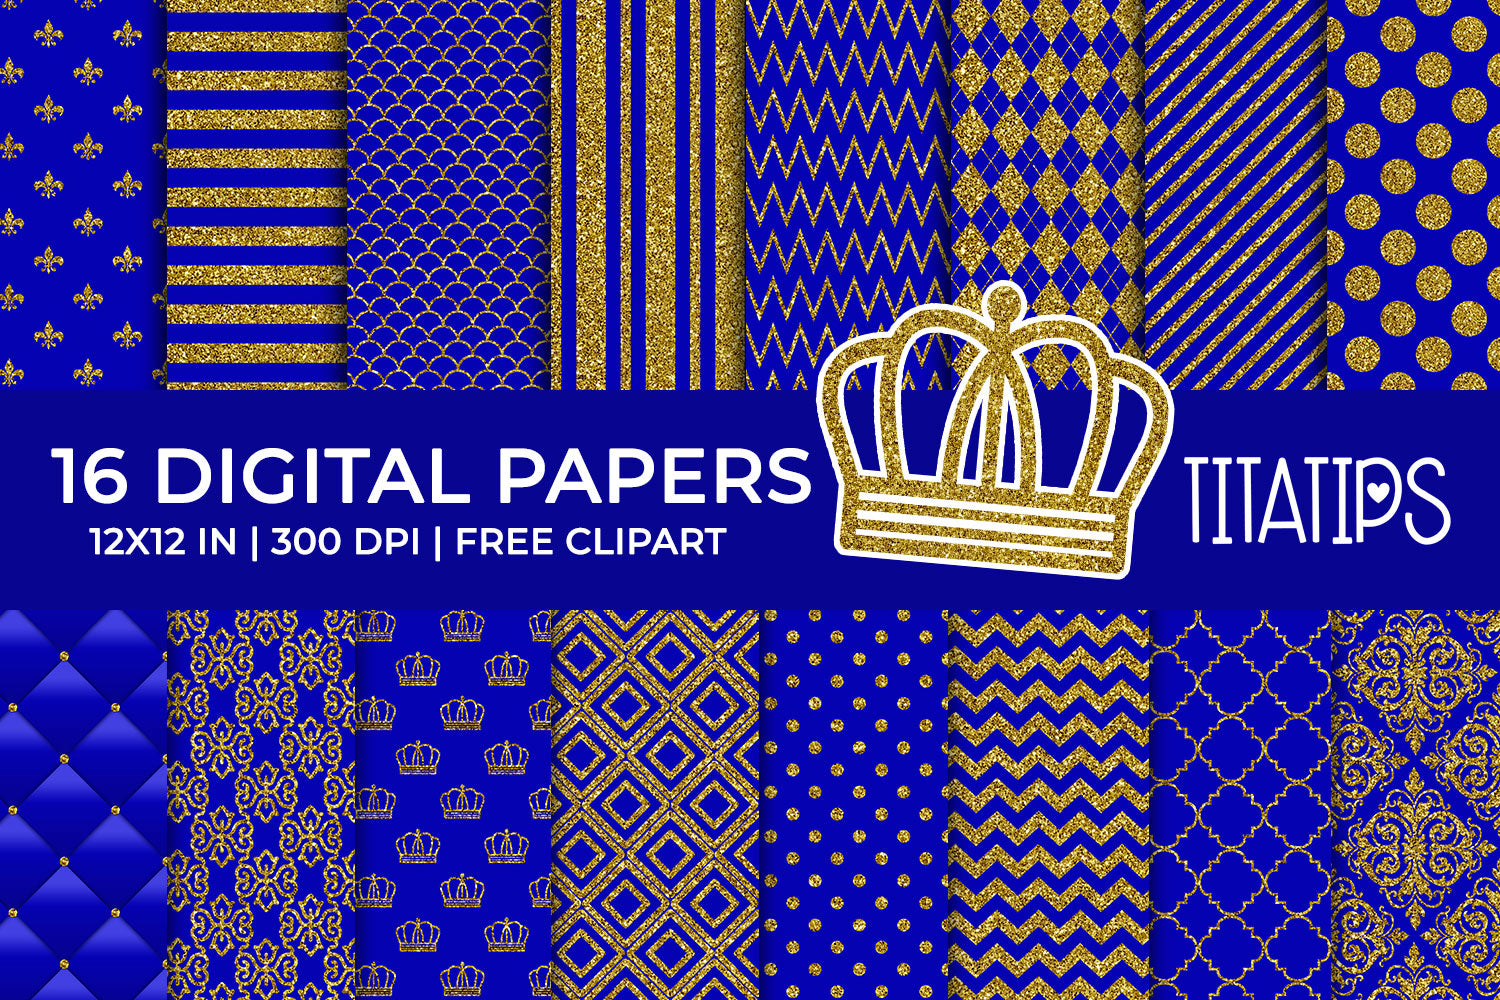 Royal Blue and Gold Glitter Digital Papers Set, Commercial Use [INSTANT DOWNLOAD] - TitaTipsPrintables